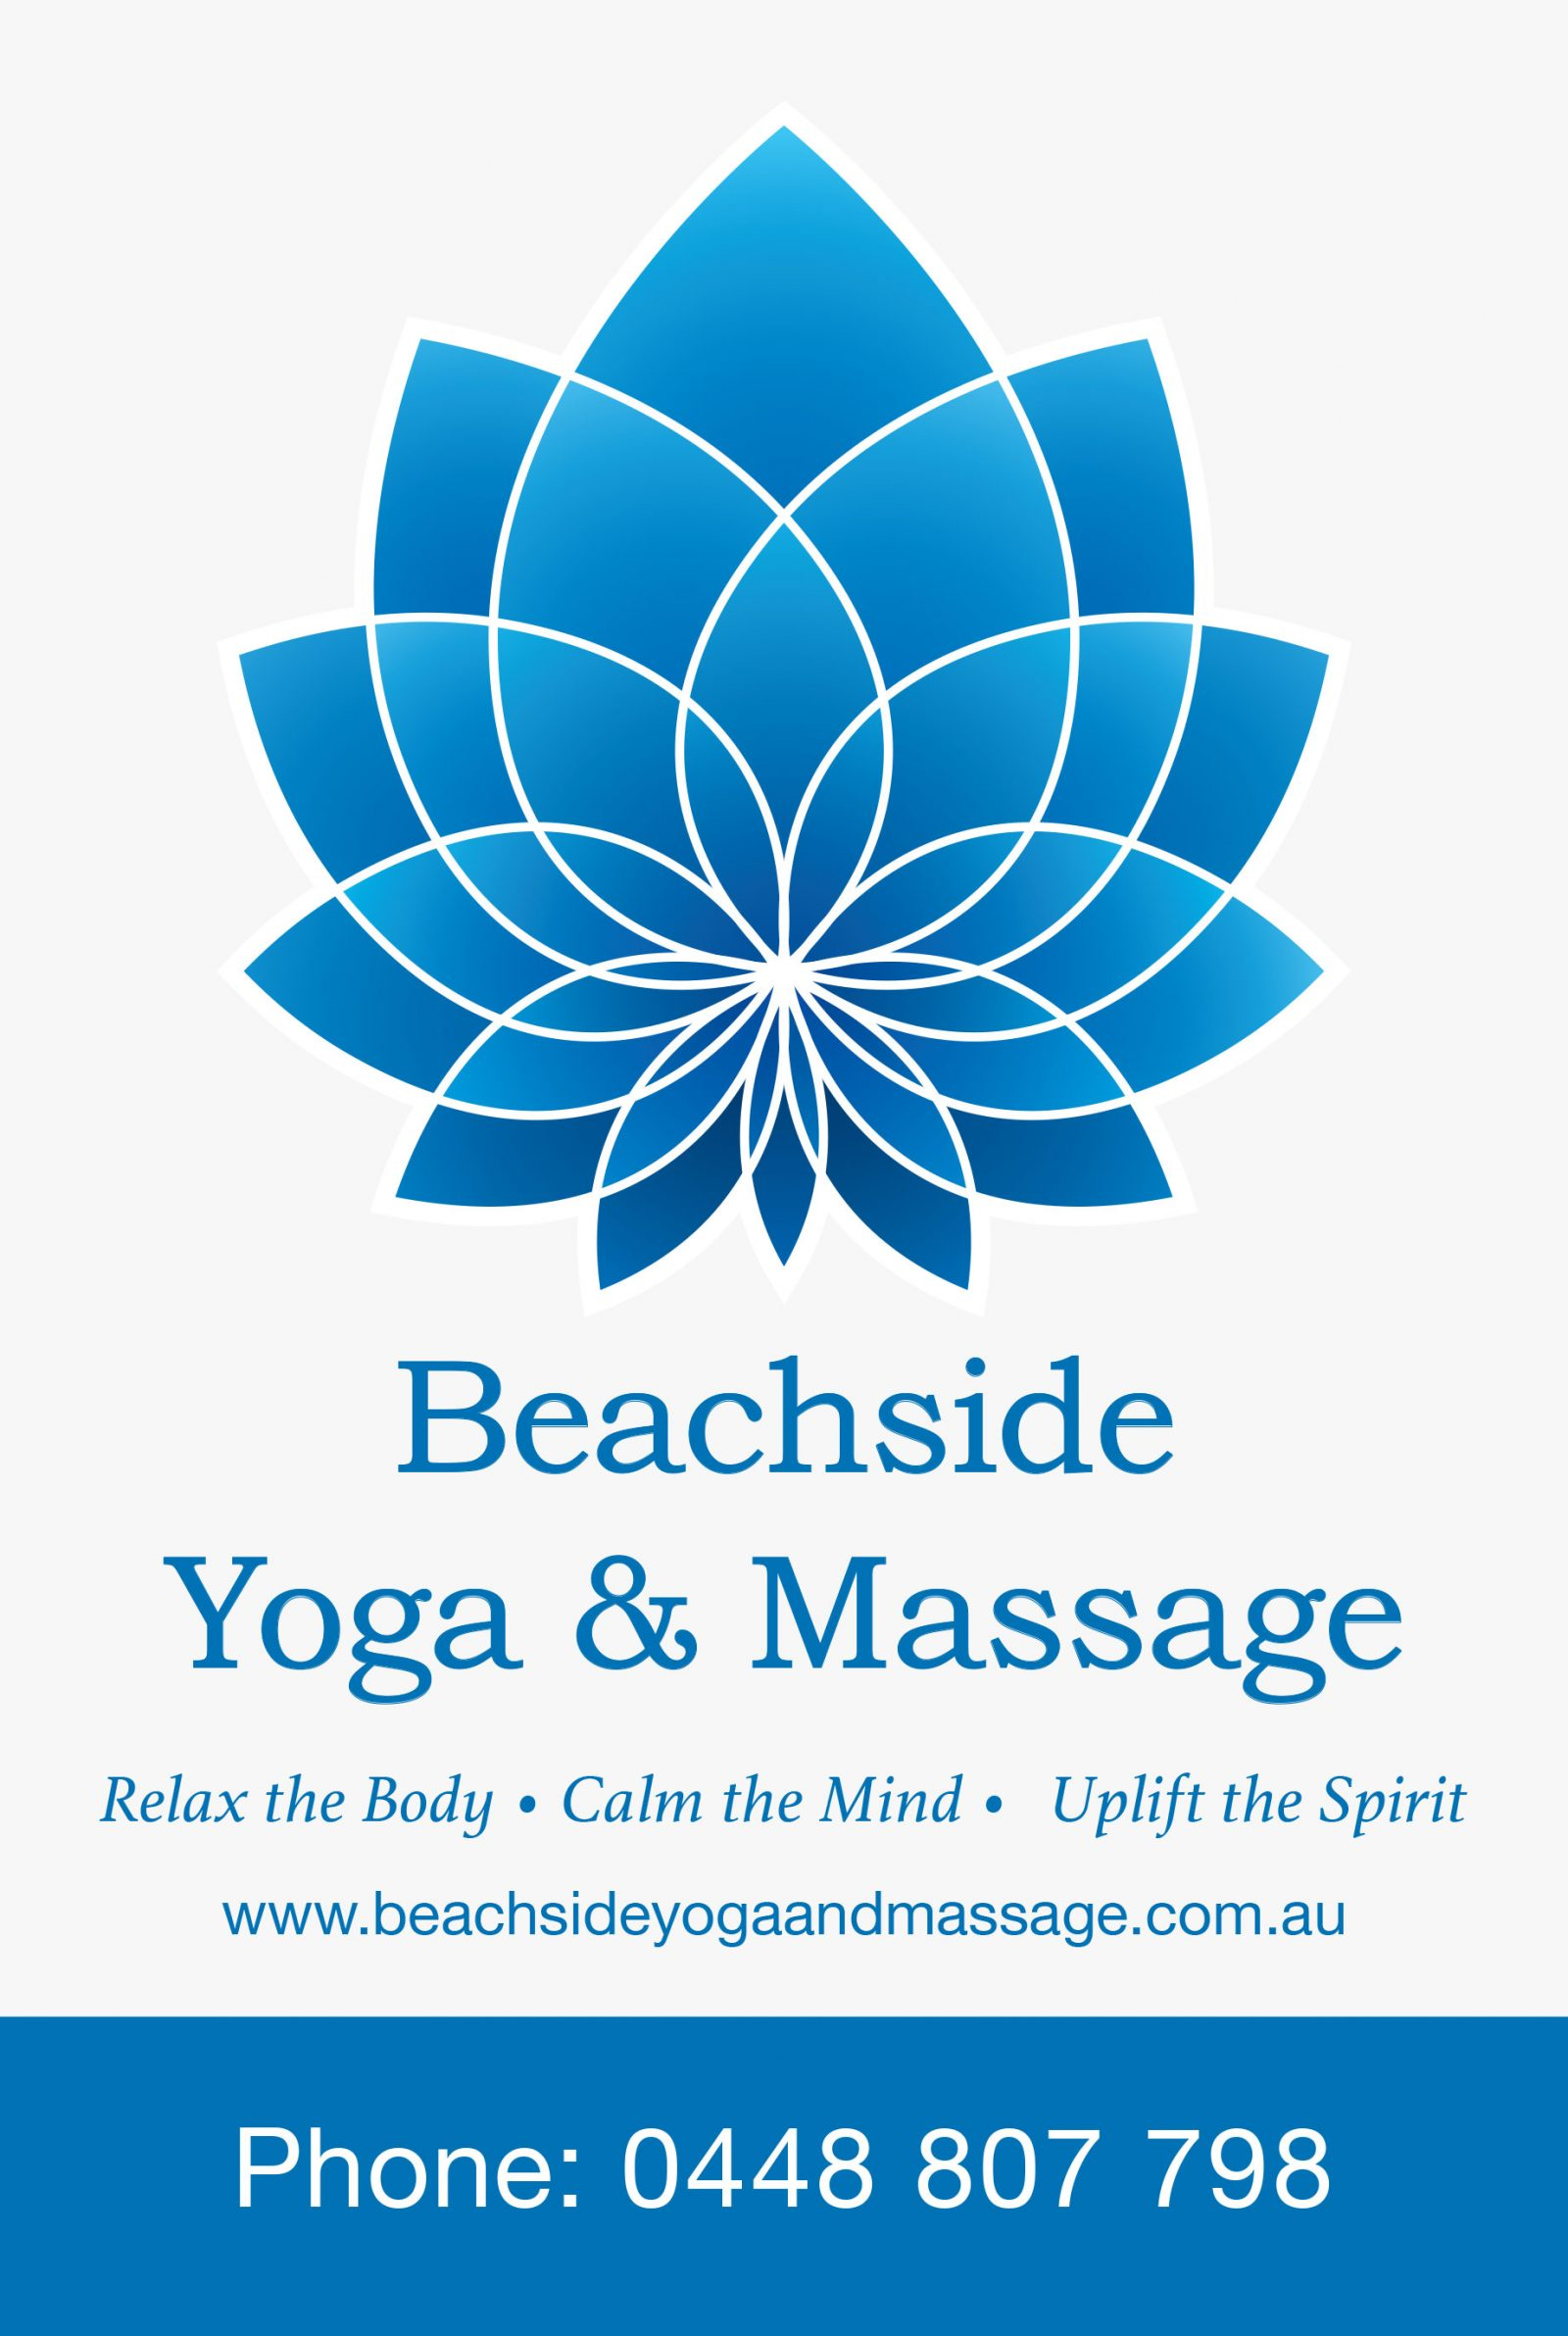 Building signage for Beachside Yoga & Massage, Byron Bay.